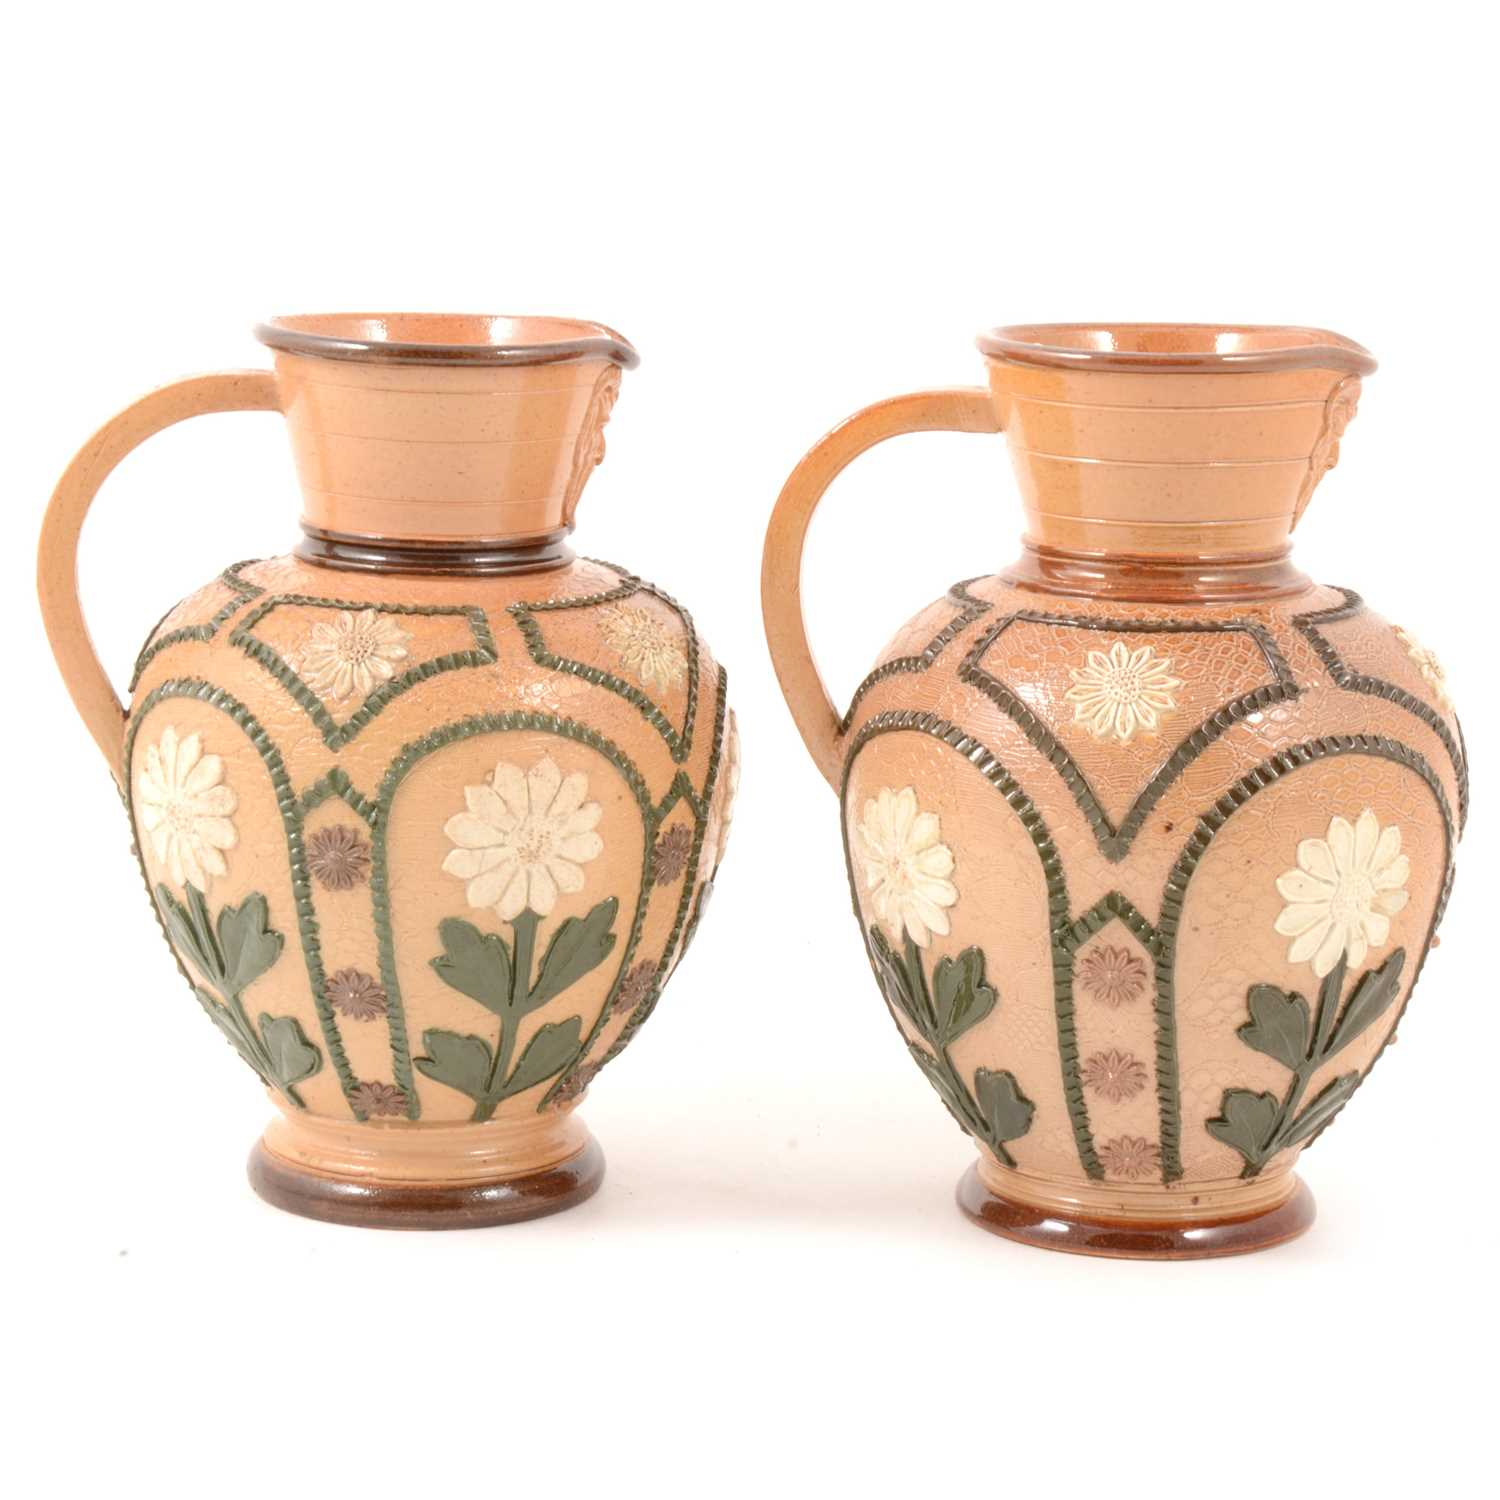 Lot 32 - Pair of Doulton Lambeth Slater's patent Aesthetic style stoneware jugs.